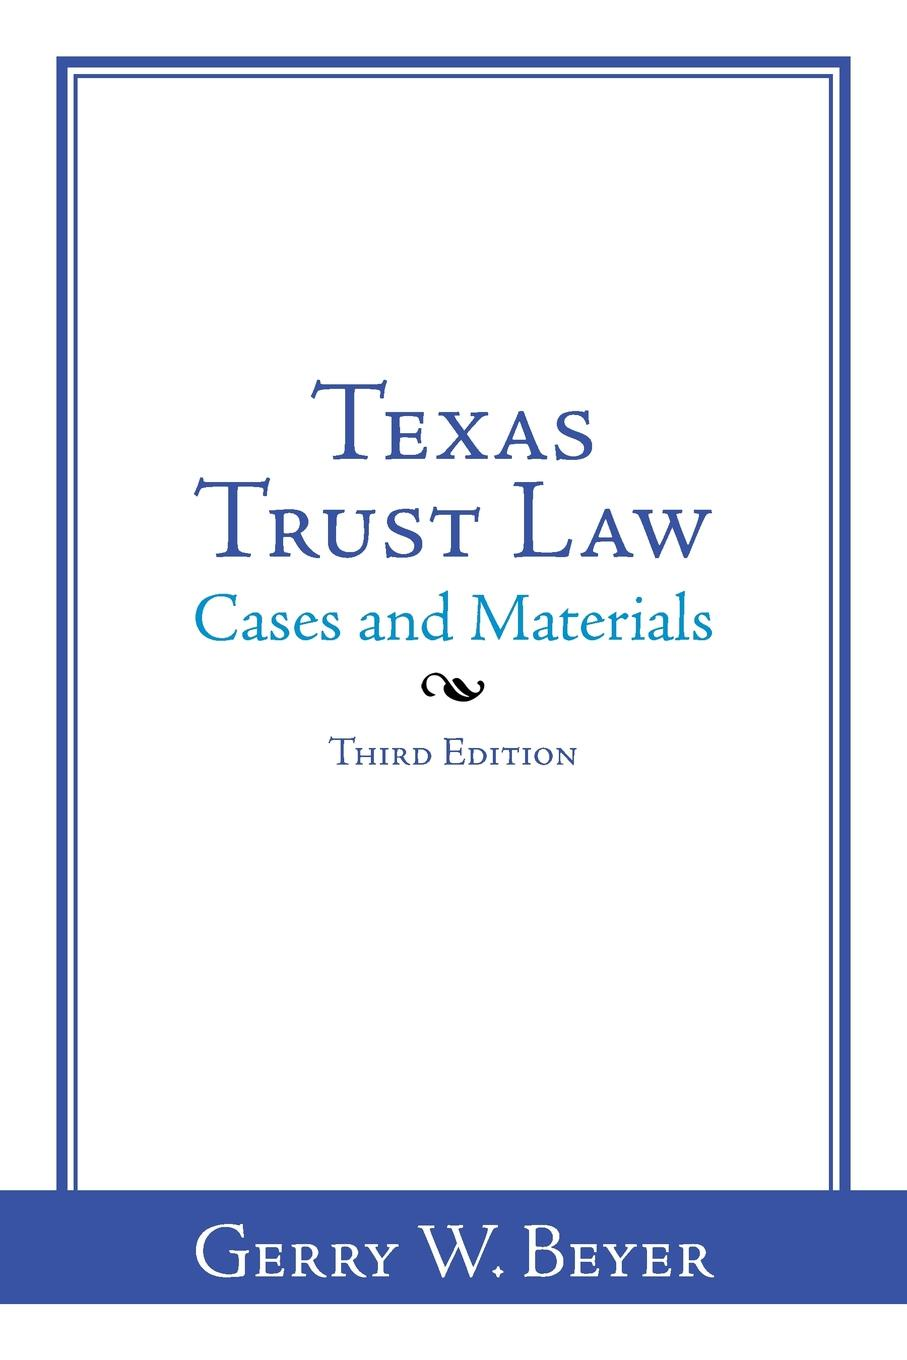 Gerry W. Beyer Texas Trust Law. Cases and Materials-Third Edition charles green h the trusted advisor fieldbook a comprehensive toolkit for leading with trust